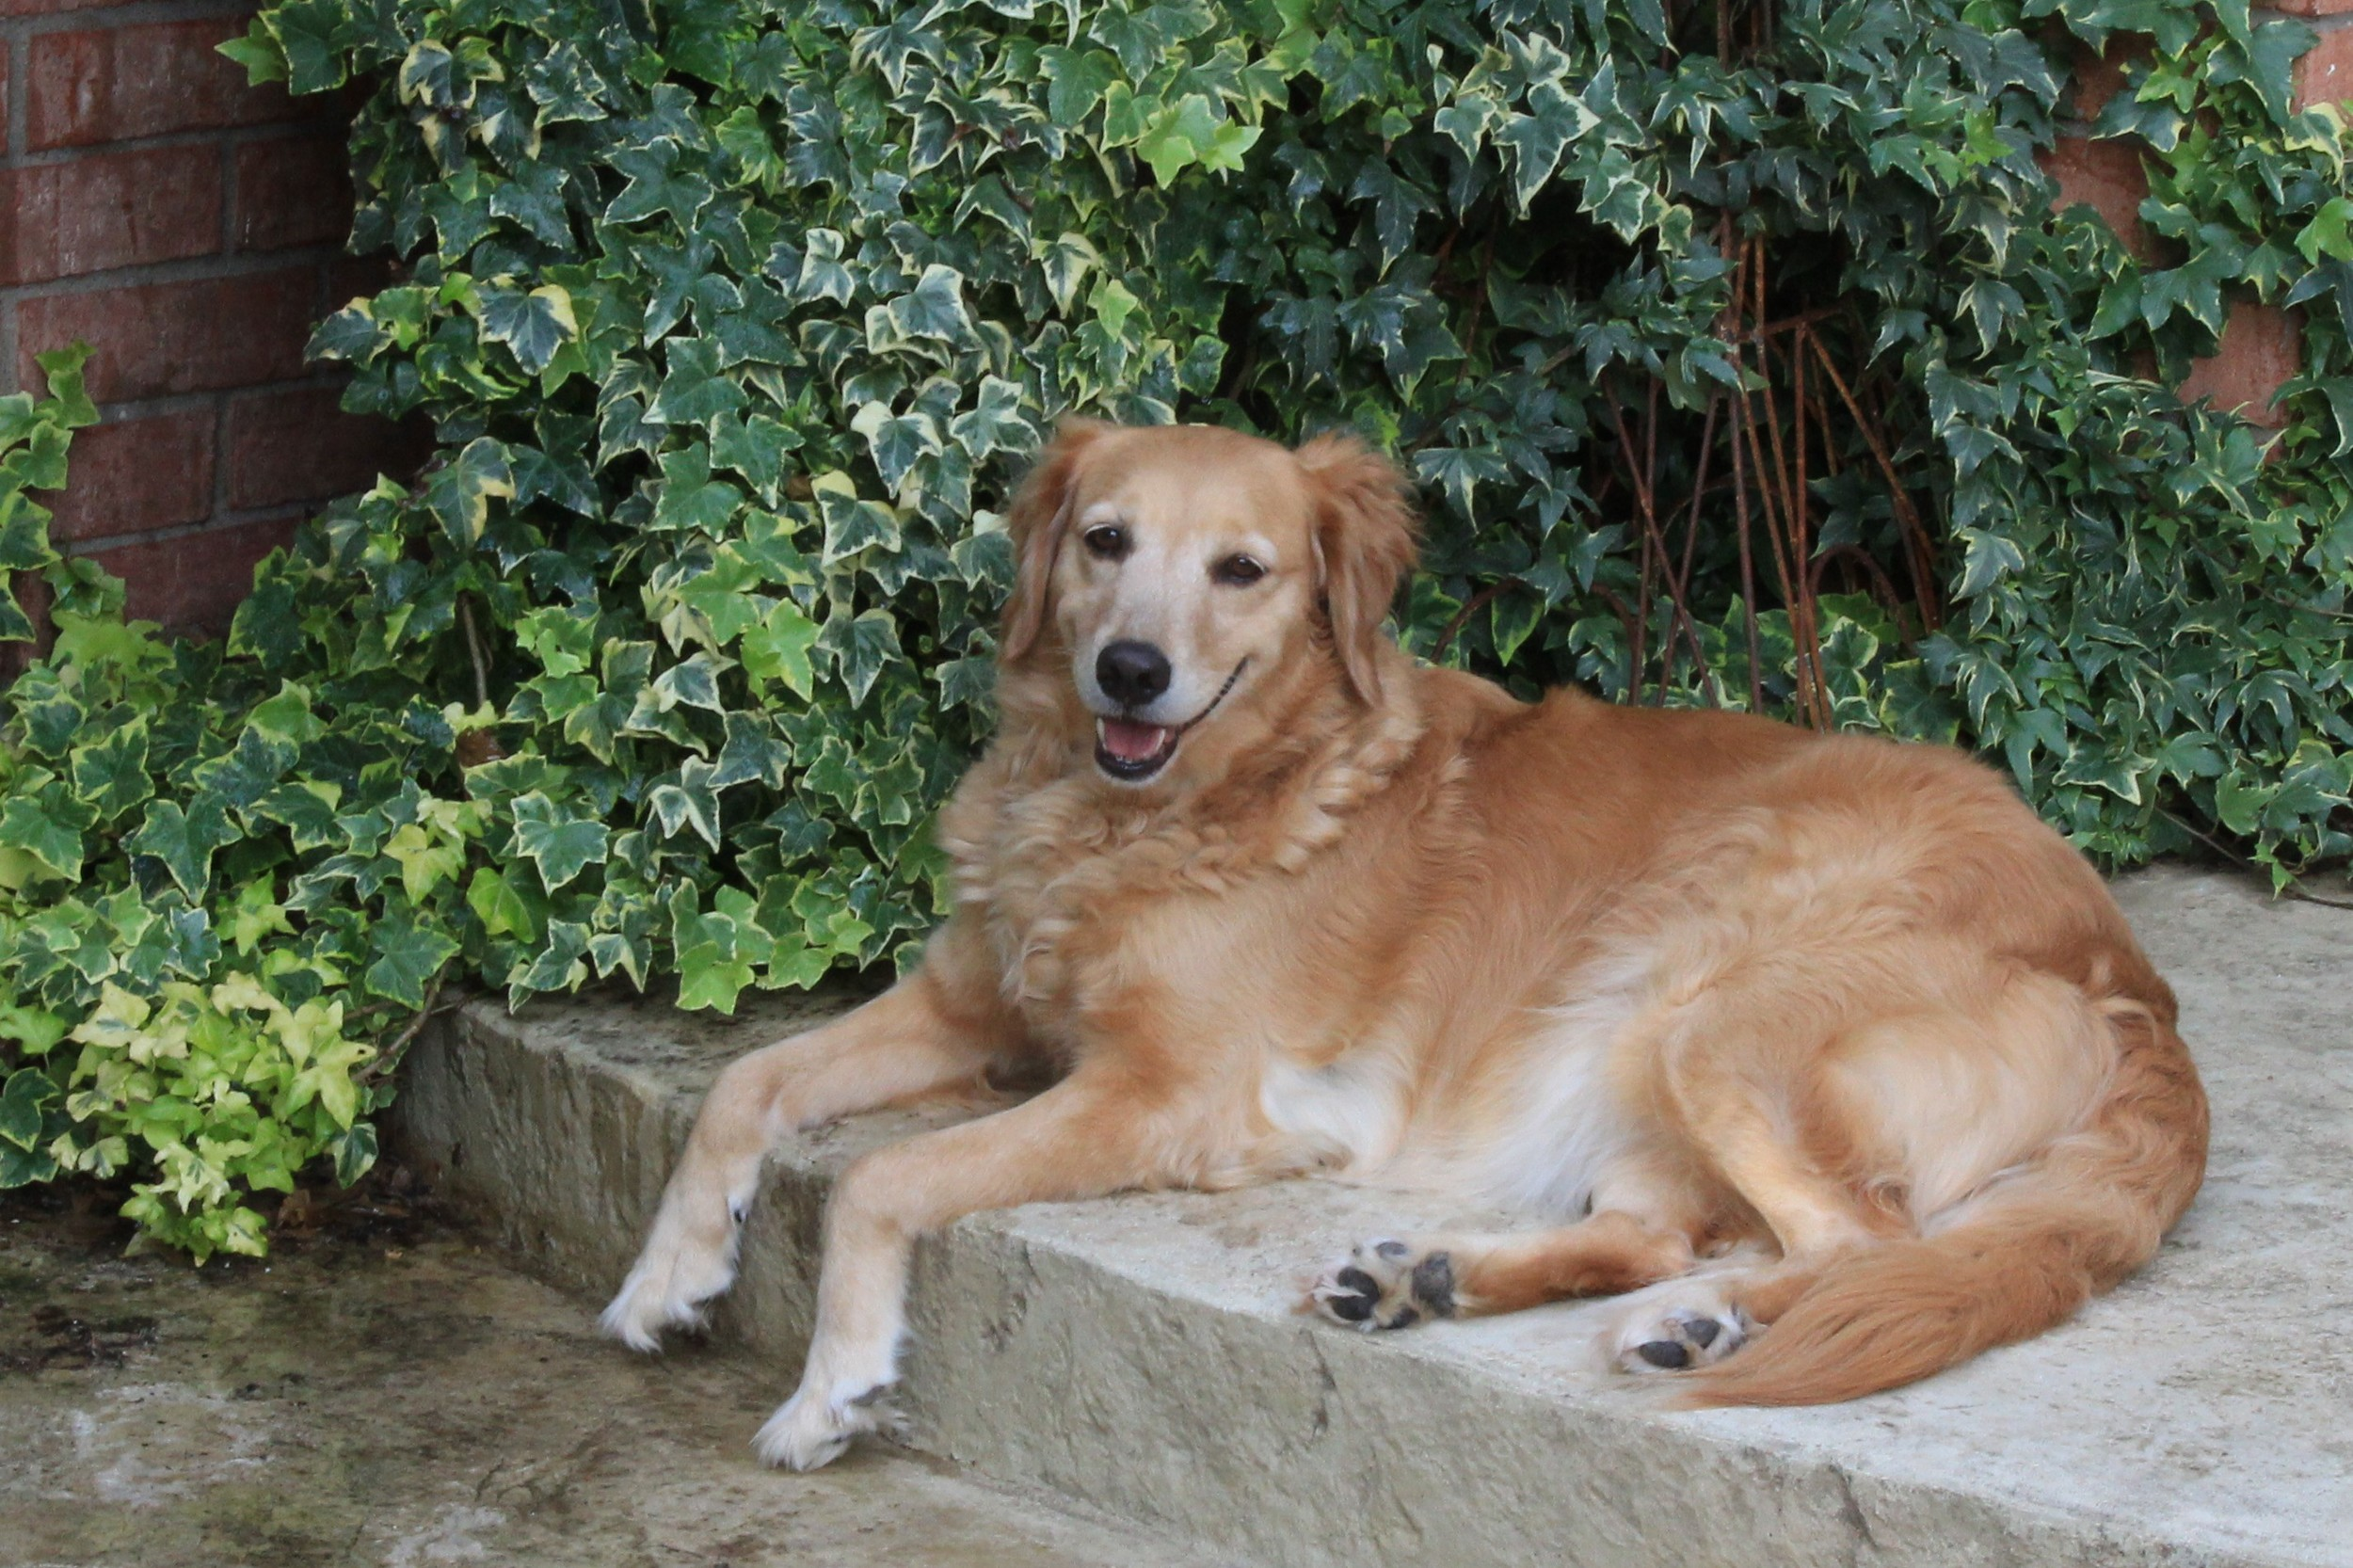 In honor of our sweet Lucy and all the Goldens who have found their furever home thanks to GRRNT! The Wittsche Family